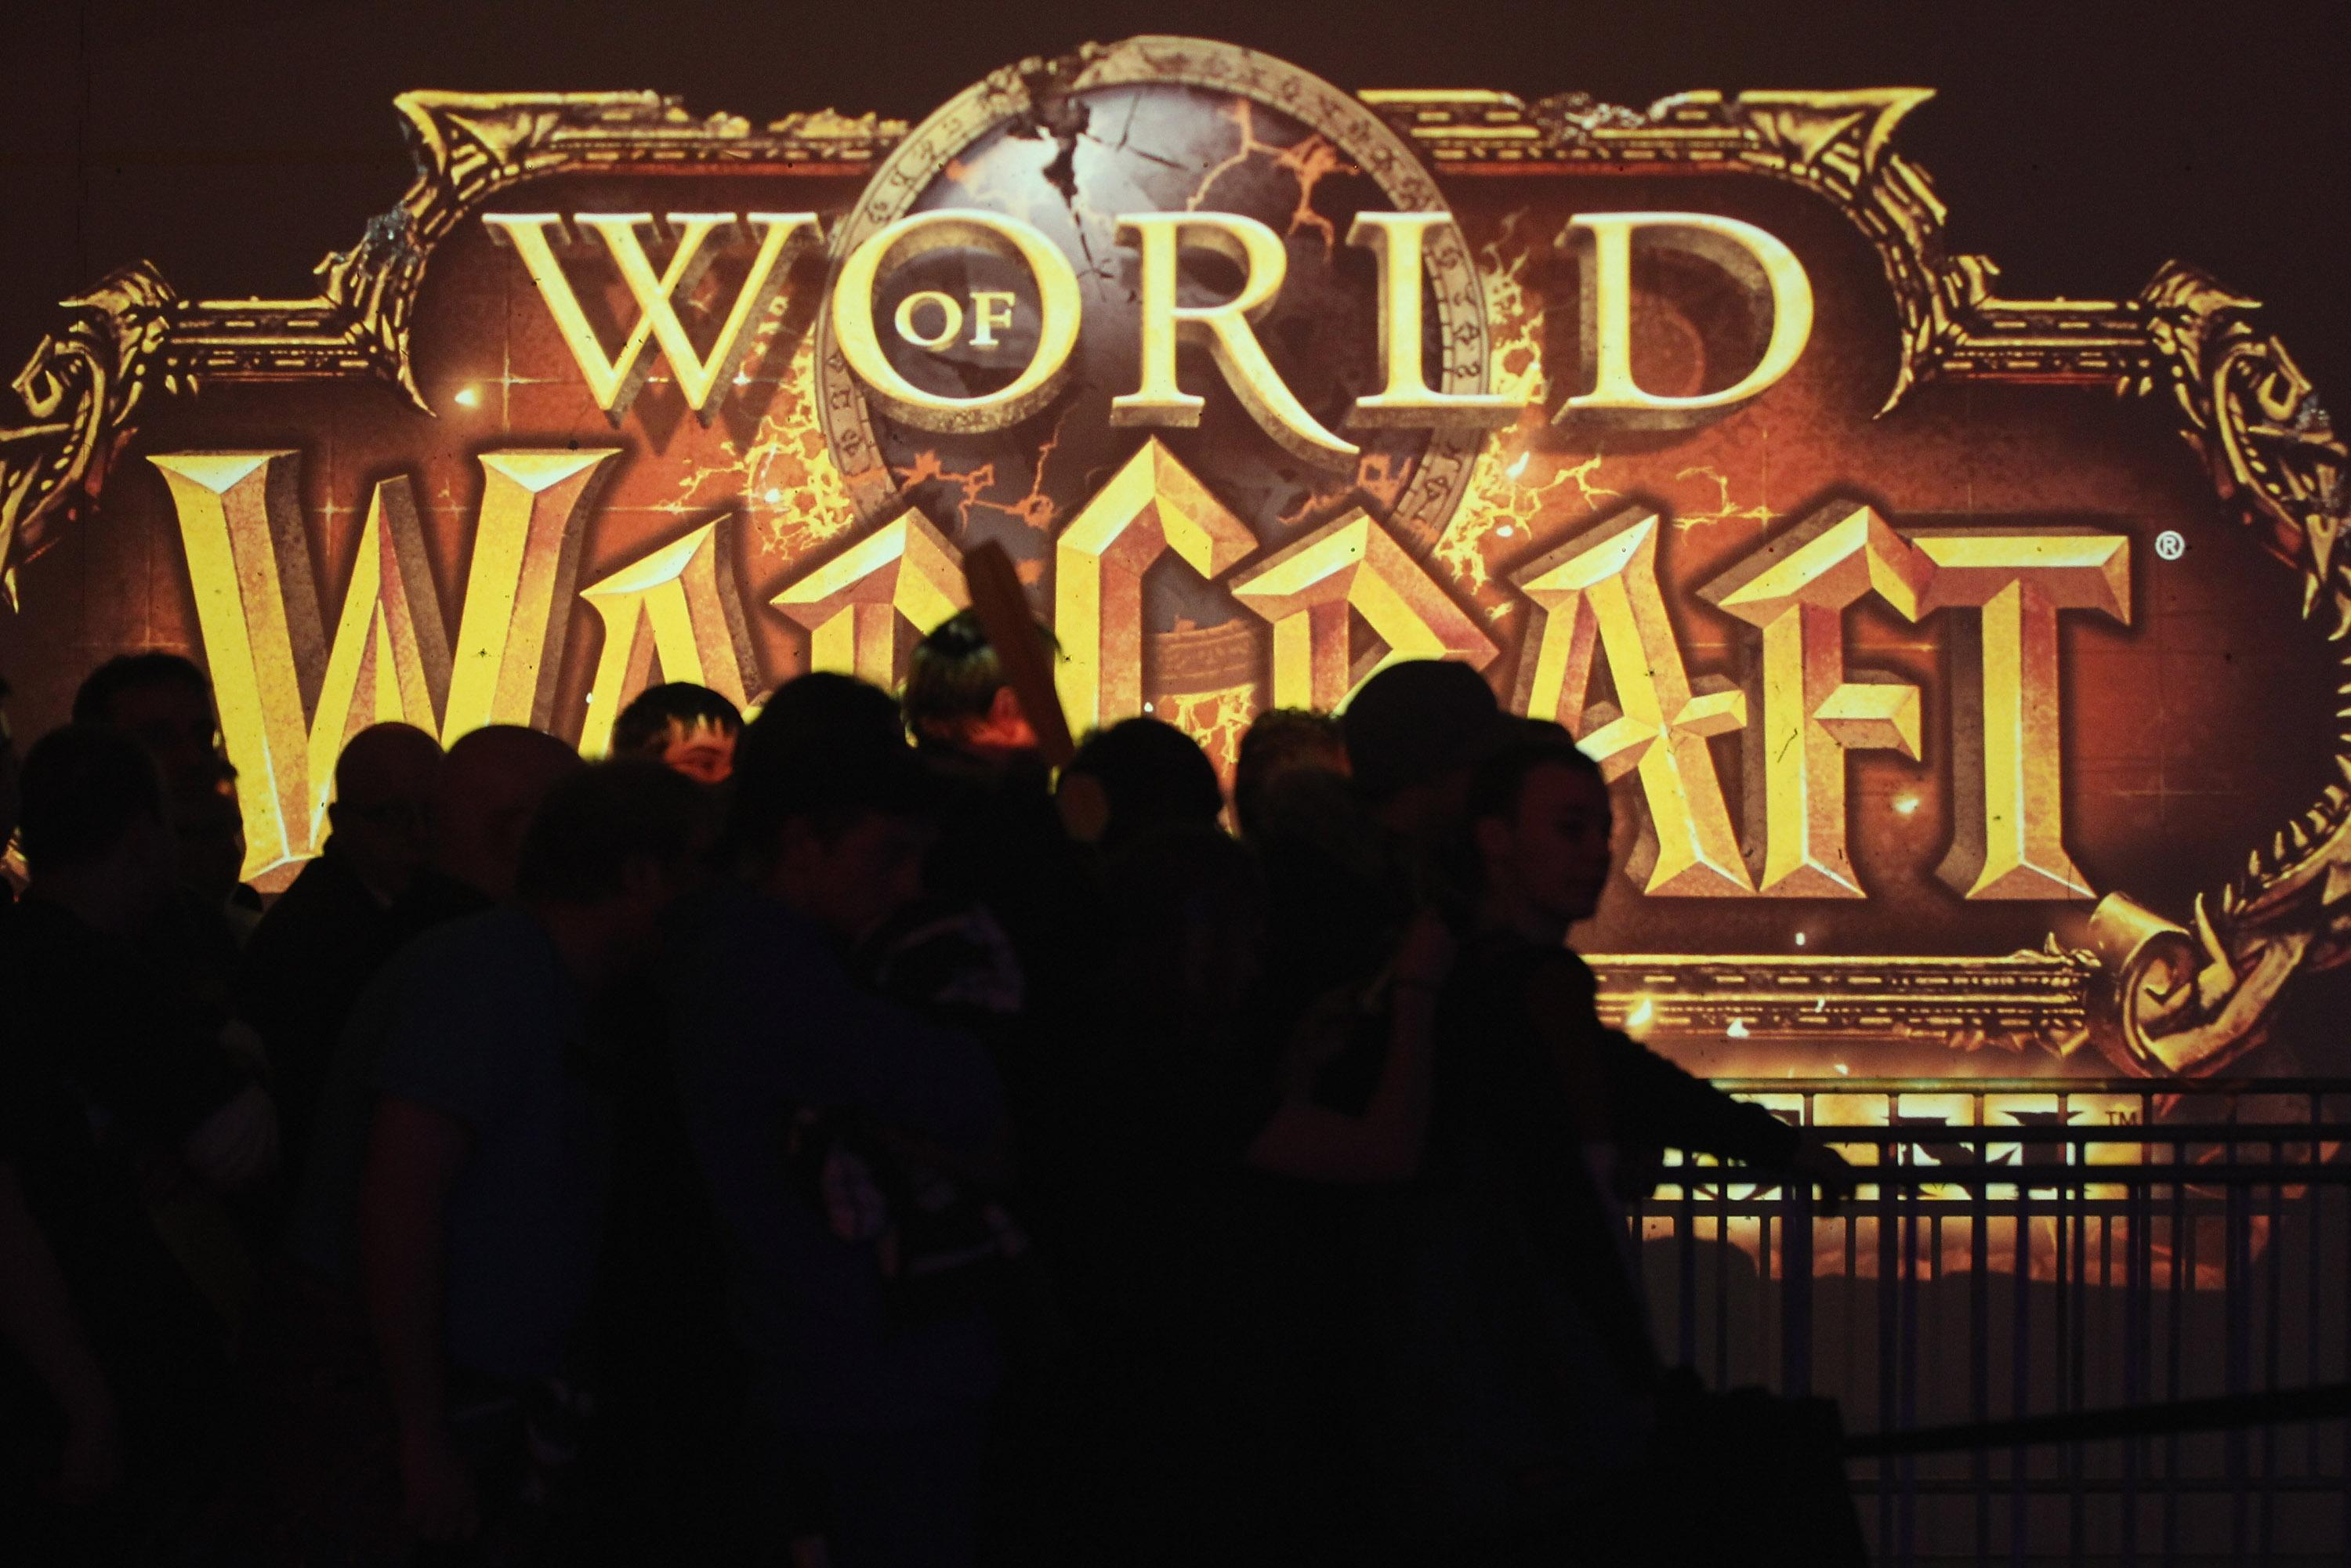 World of Warcraft Player Sentenced to Prison After Cyber-Assaulting Blizzard